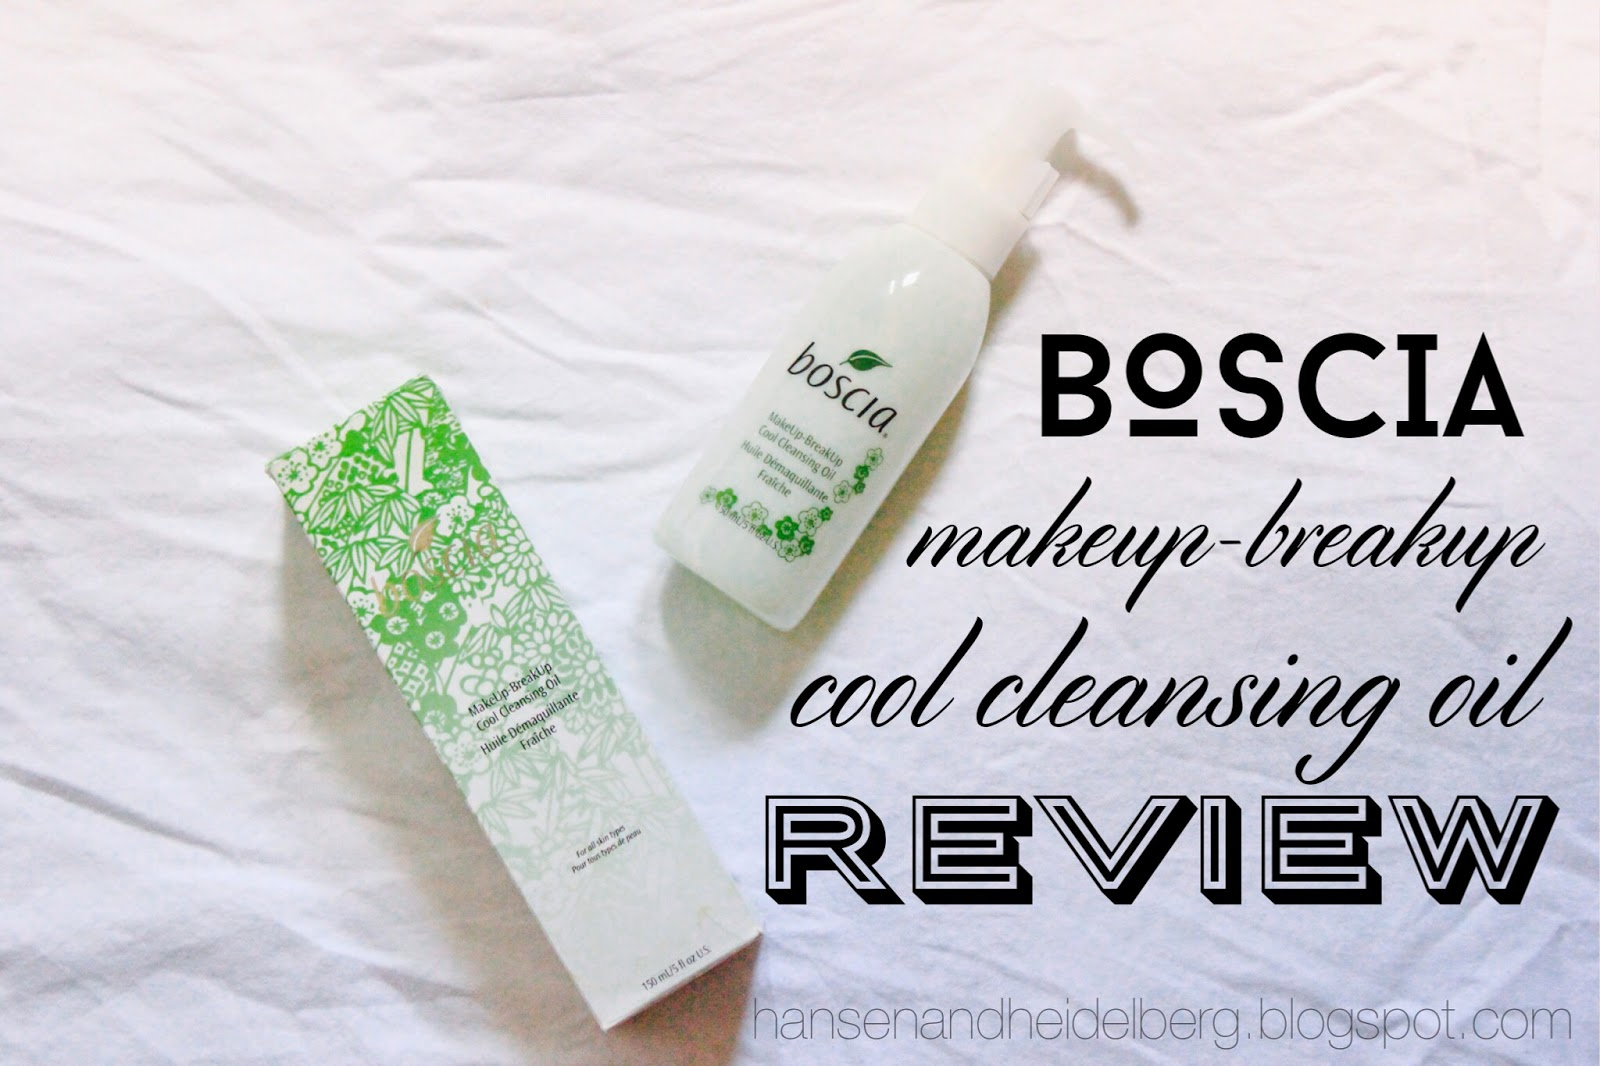 boscia, boscia makeup-breakup cool cleansing oil, best makeup removers